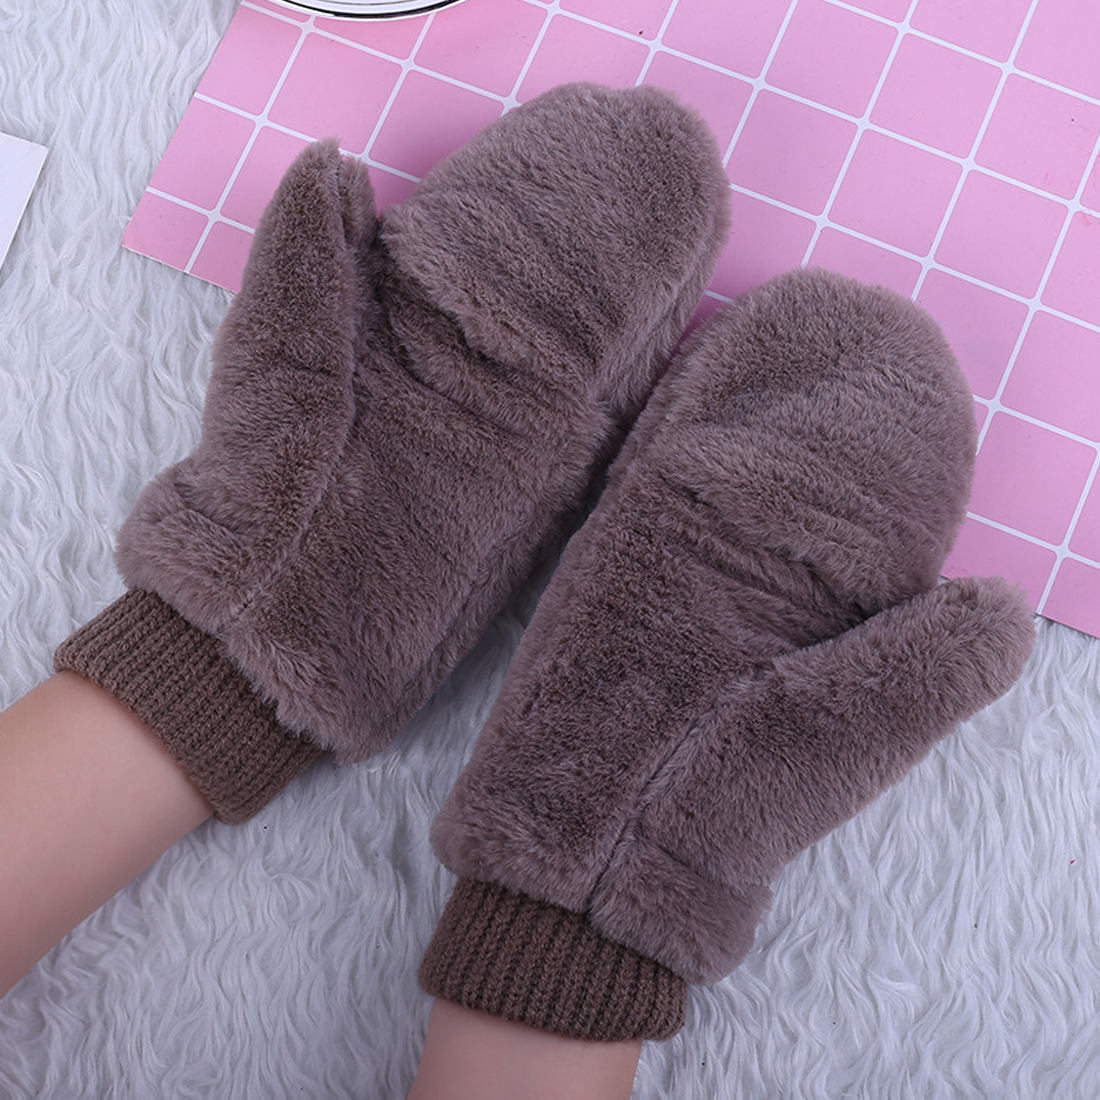 Hot Winter Thickened Cute Whole Covered Finger Mittens for Women Plush Gloves Fluffy Rabbit Dual-layer Hang on Neck Type Mittens